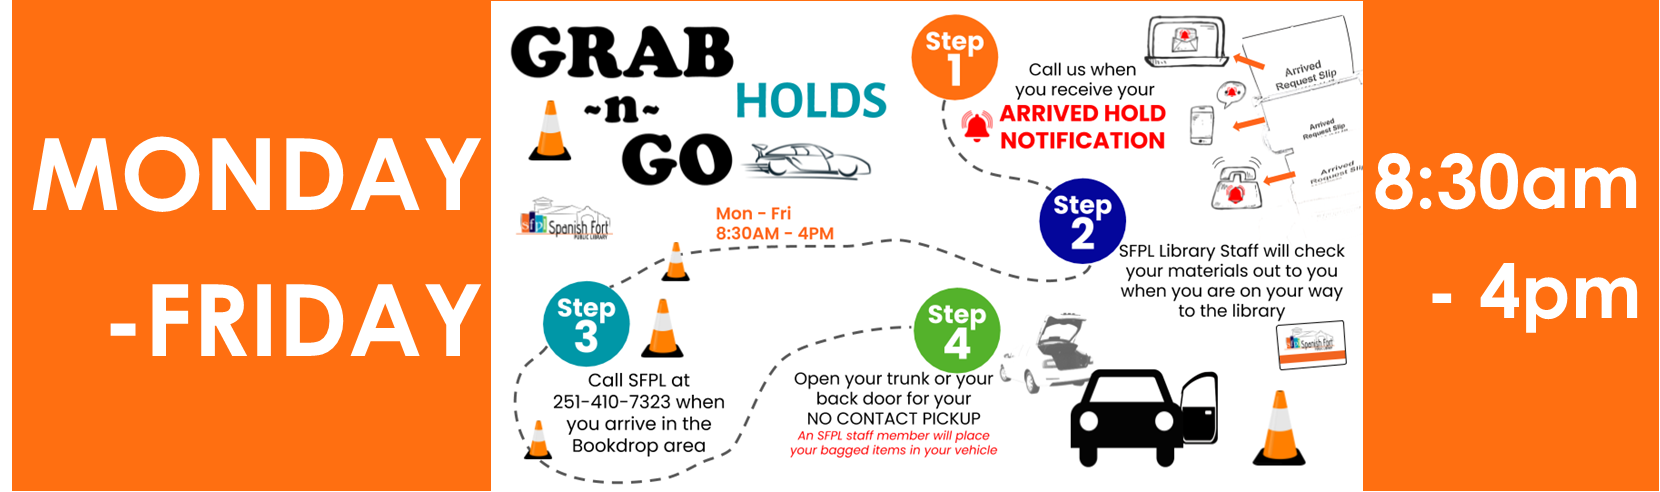 SFPL is currently offering a no-contact GRABnGO pickup service for ARRIVED HOLD items. Call us for details 251-410-7323